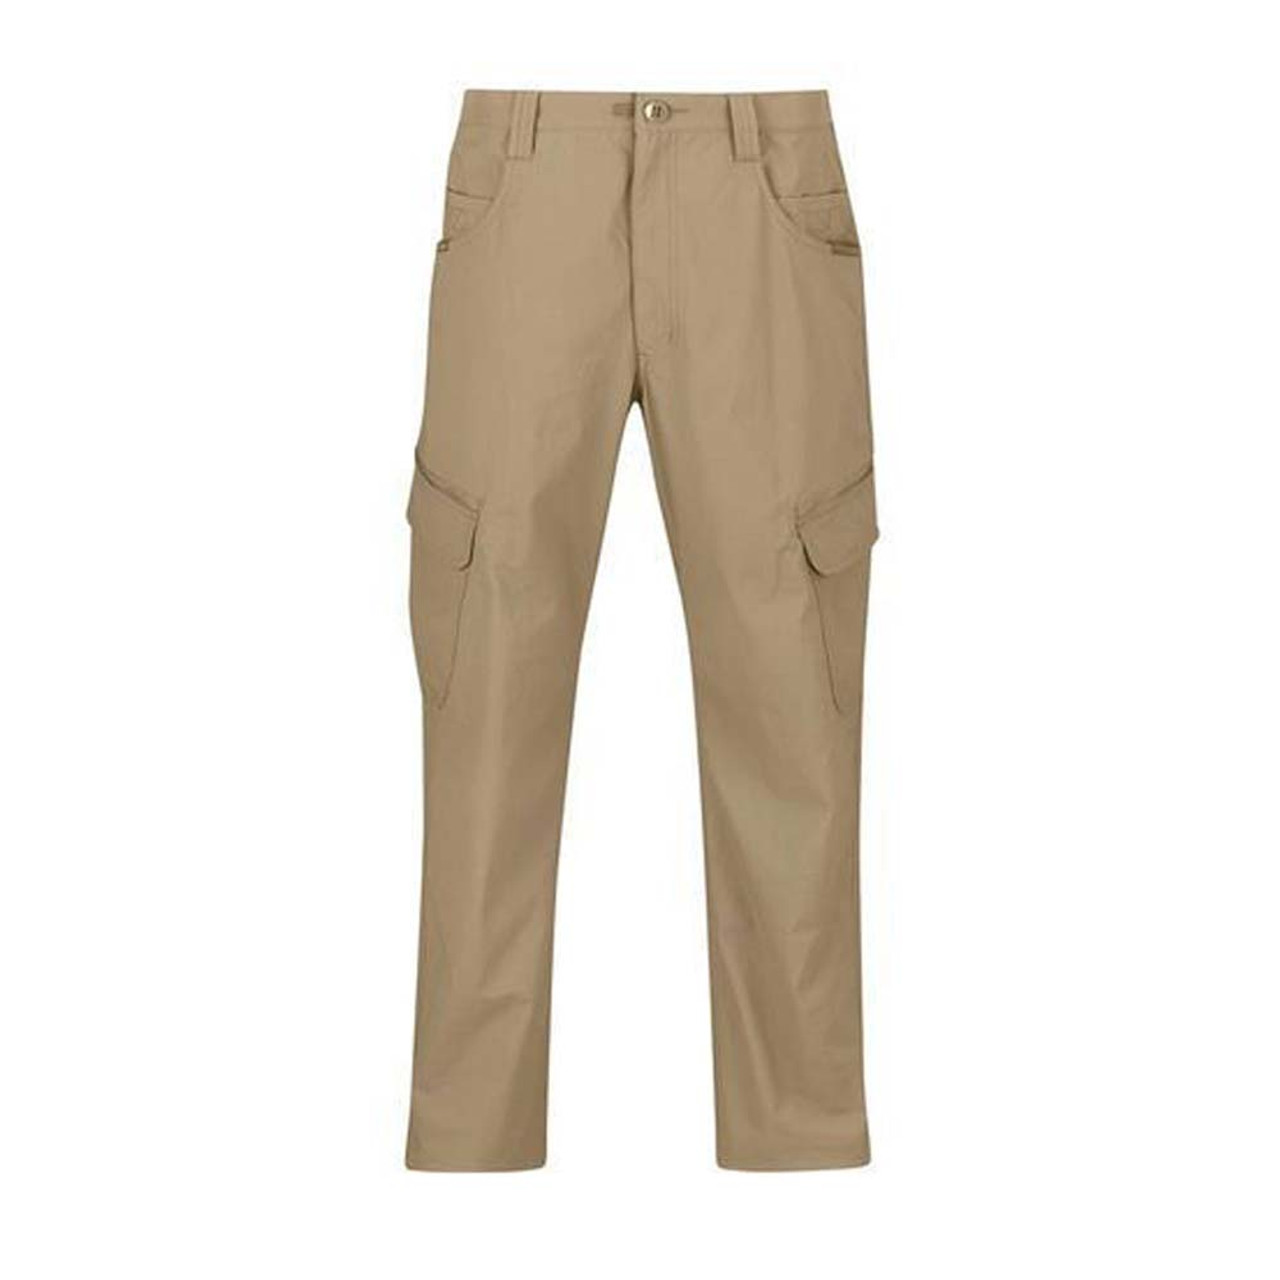 Propper F5258 Men's Summerweight Tactical Pants, Nylon/Spandex ripstop, Slim/Athletic Fit, Cargo Pockets, available in Black, Khaki, Olive Green, or LAPD Navy